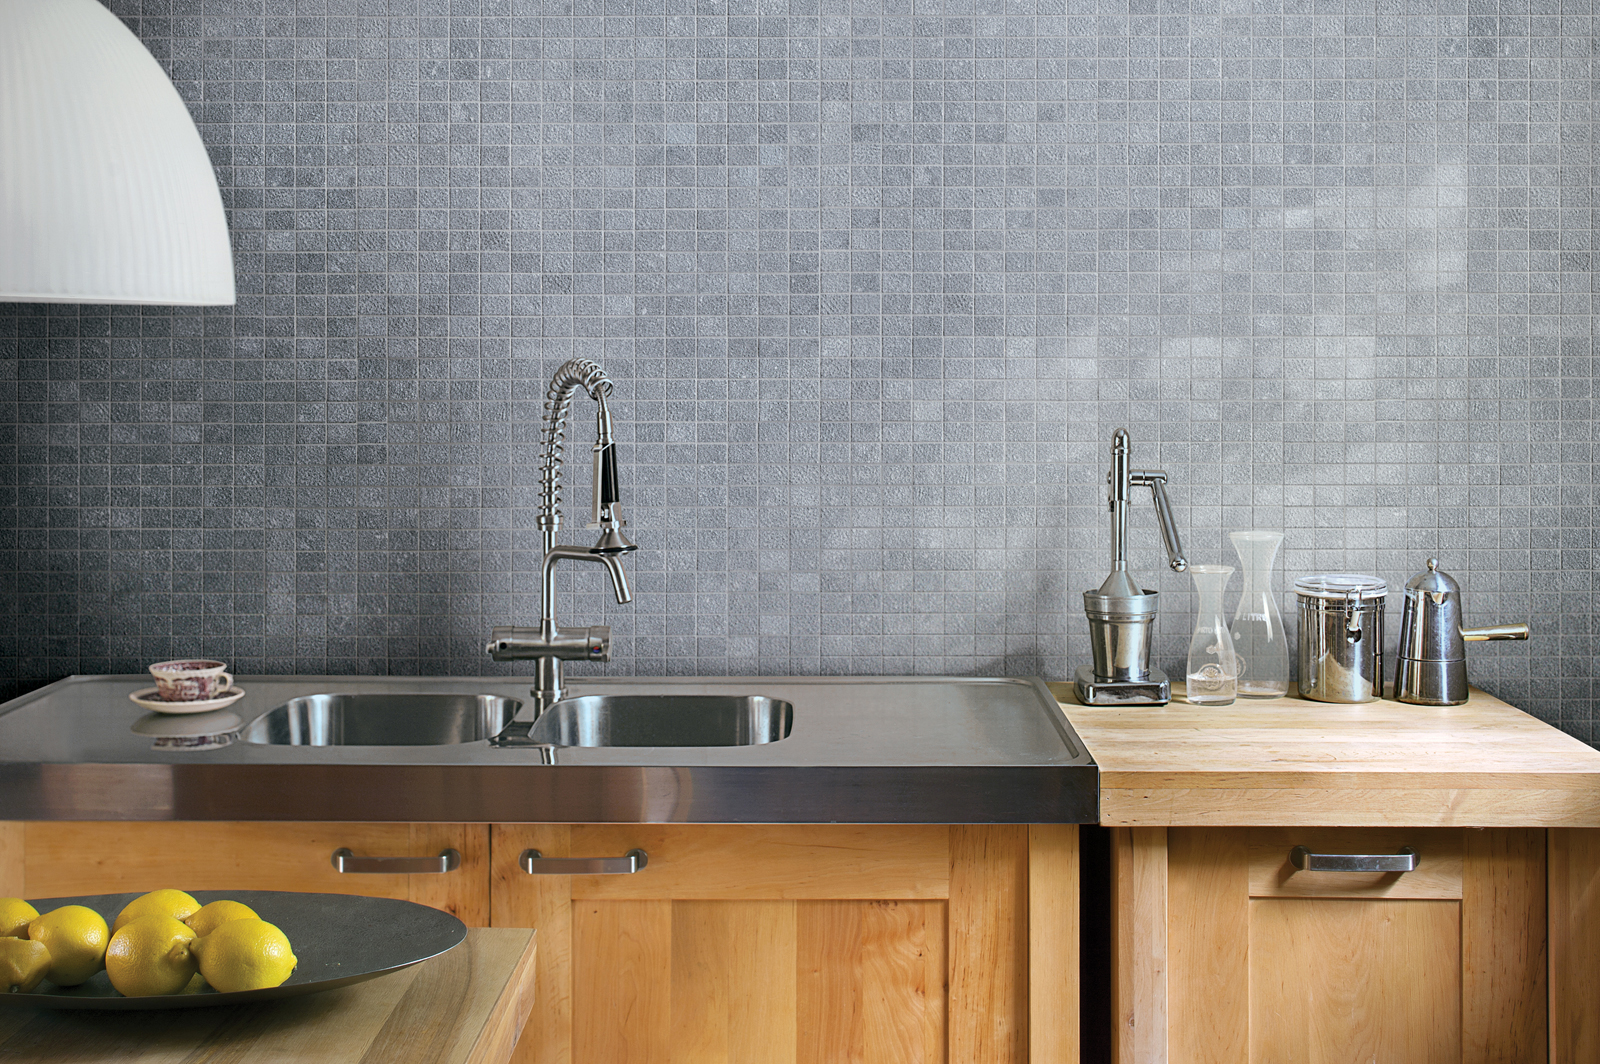 Best Mattonelle Mosaico Cucina Images - Skilifts.us - skilifts.us